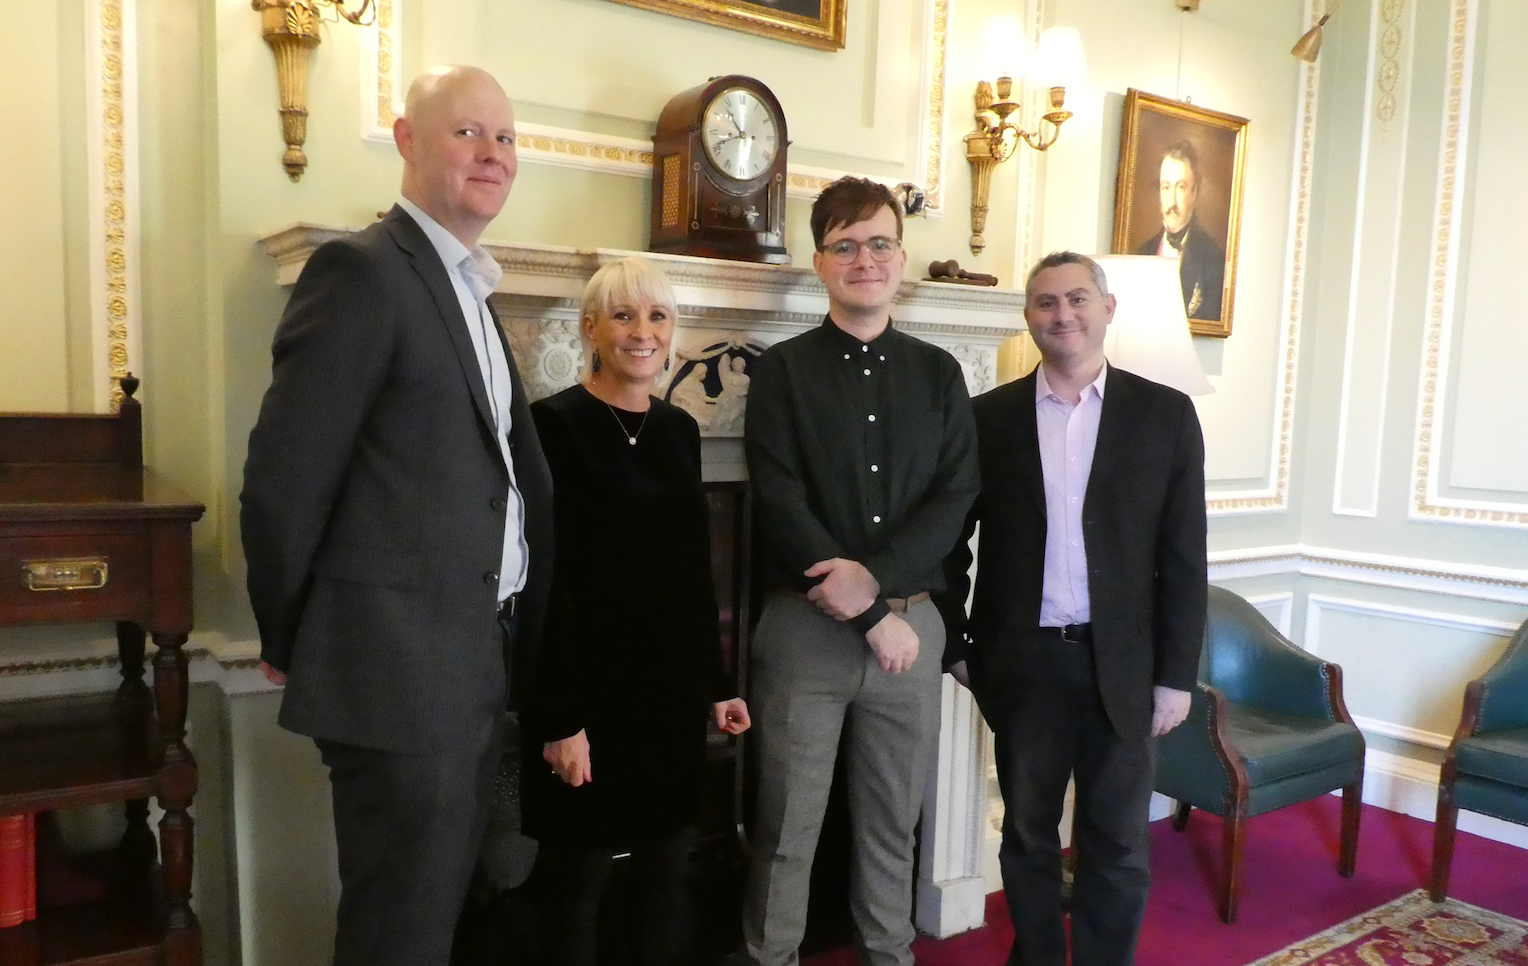 Above: Darren Cave, UKG's commercial director (left) with fellow GCA Council members (right-left) Daniel Prince (Danilo), Mark Callaby (Ohh Deer) and Karen Wilson (Paper Salad), before social distancing requirements!